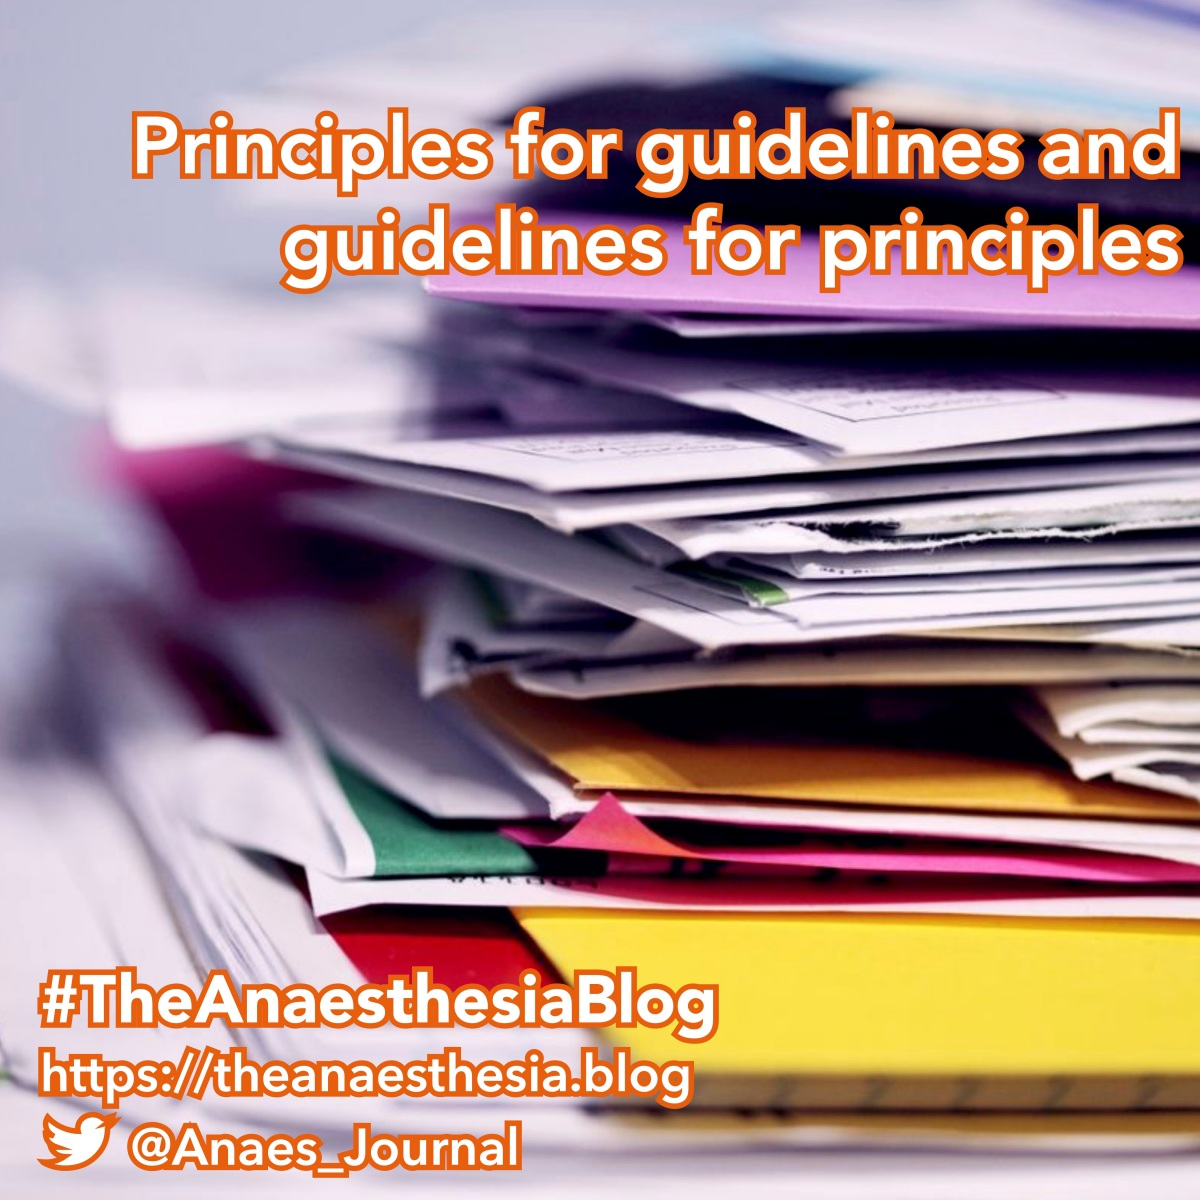 Principles for guidelines and guidelines for principles